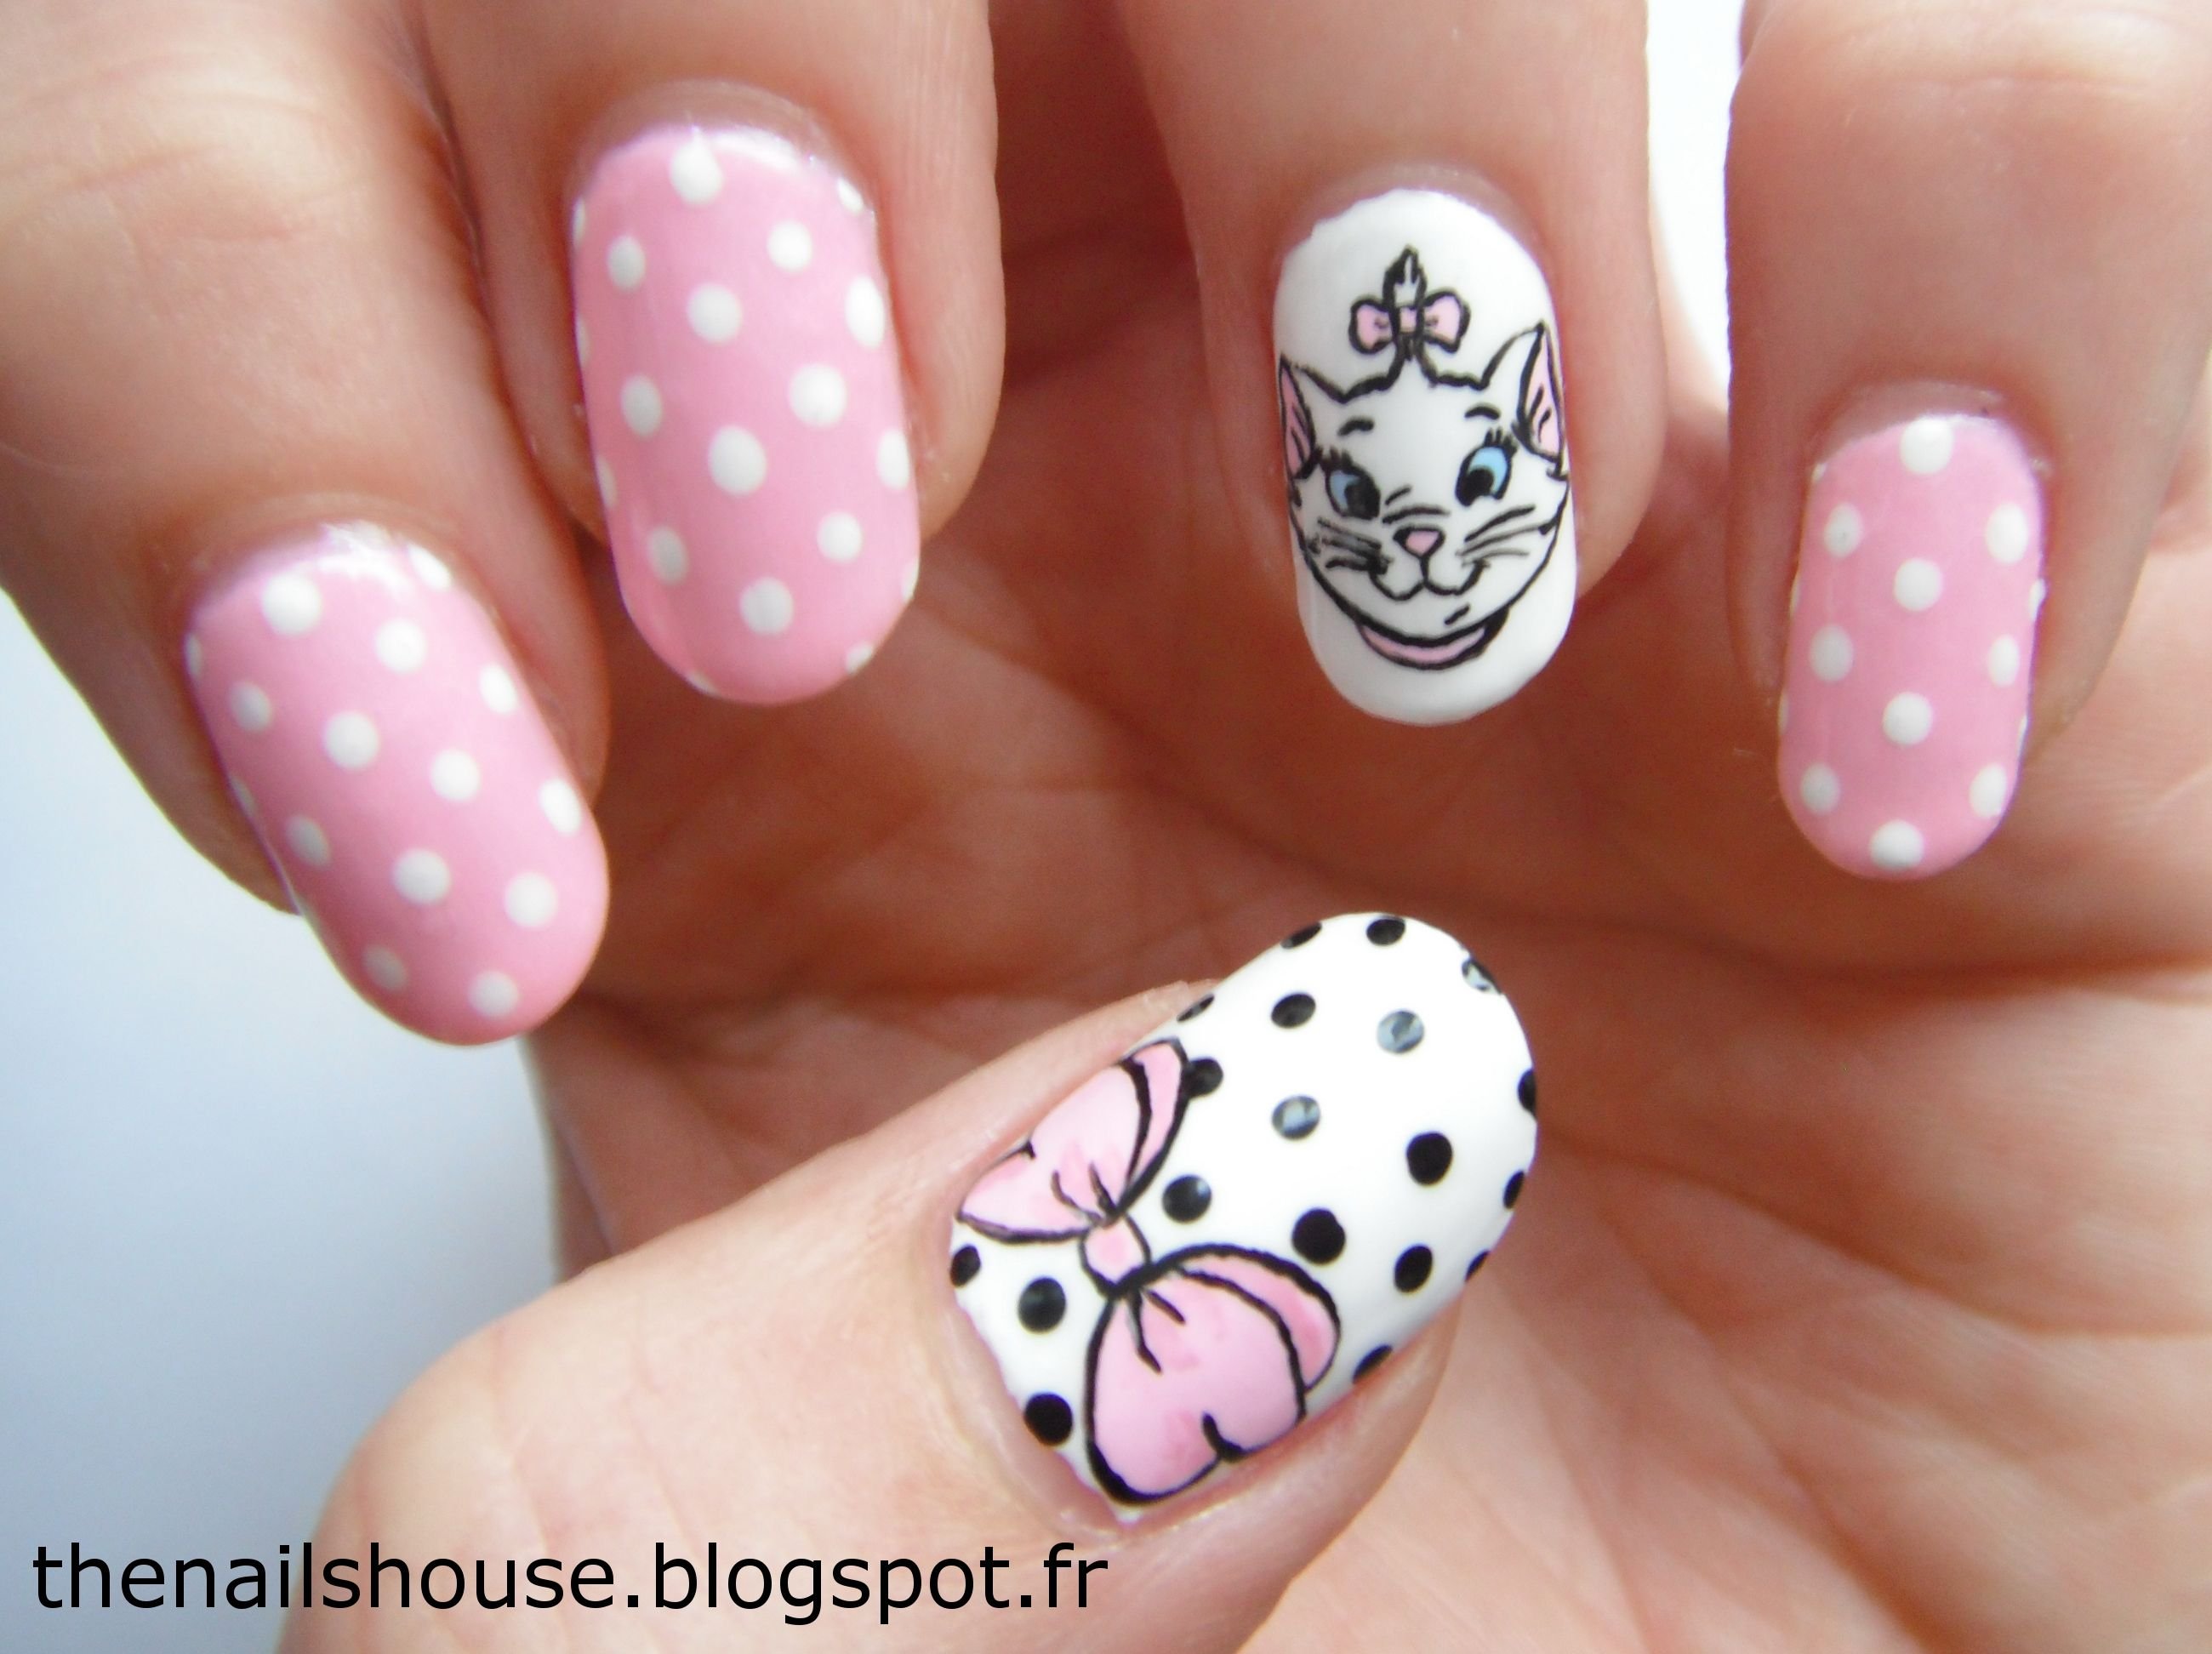 Marie, Disney, pink, dots, cat, nail art | Disney nails | Pinterest